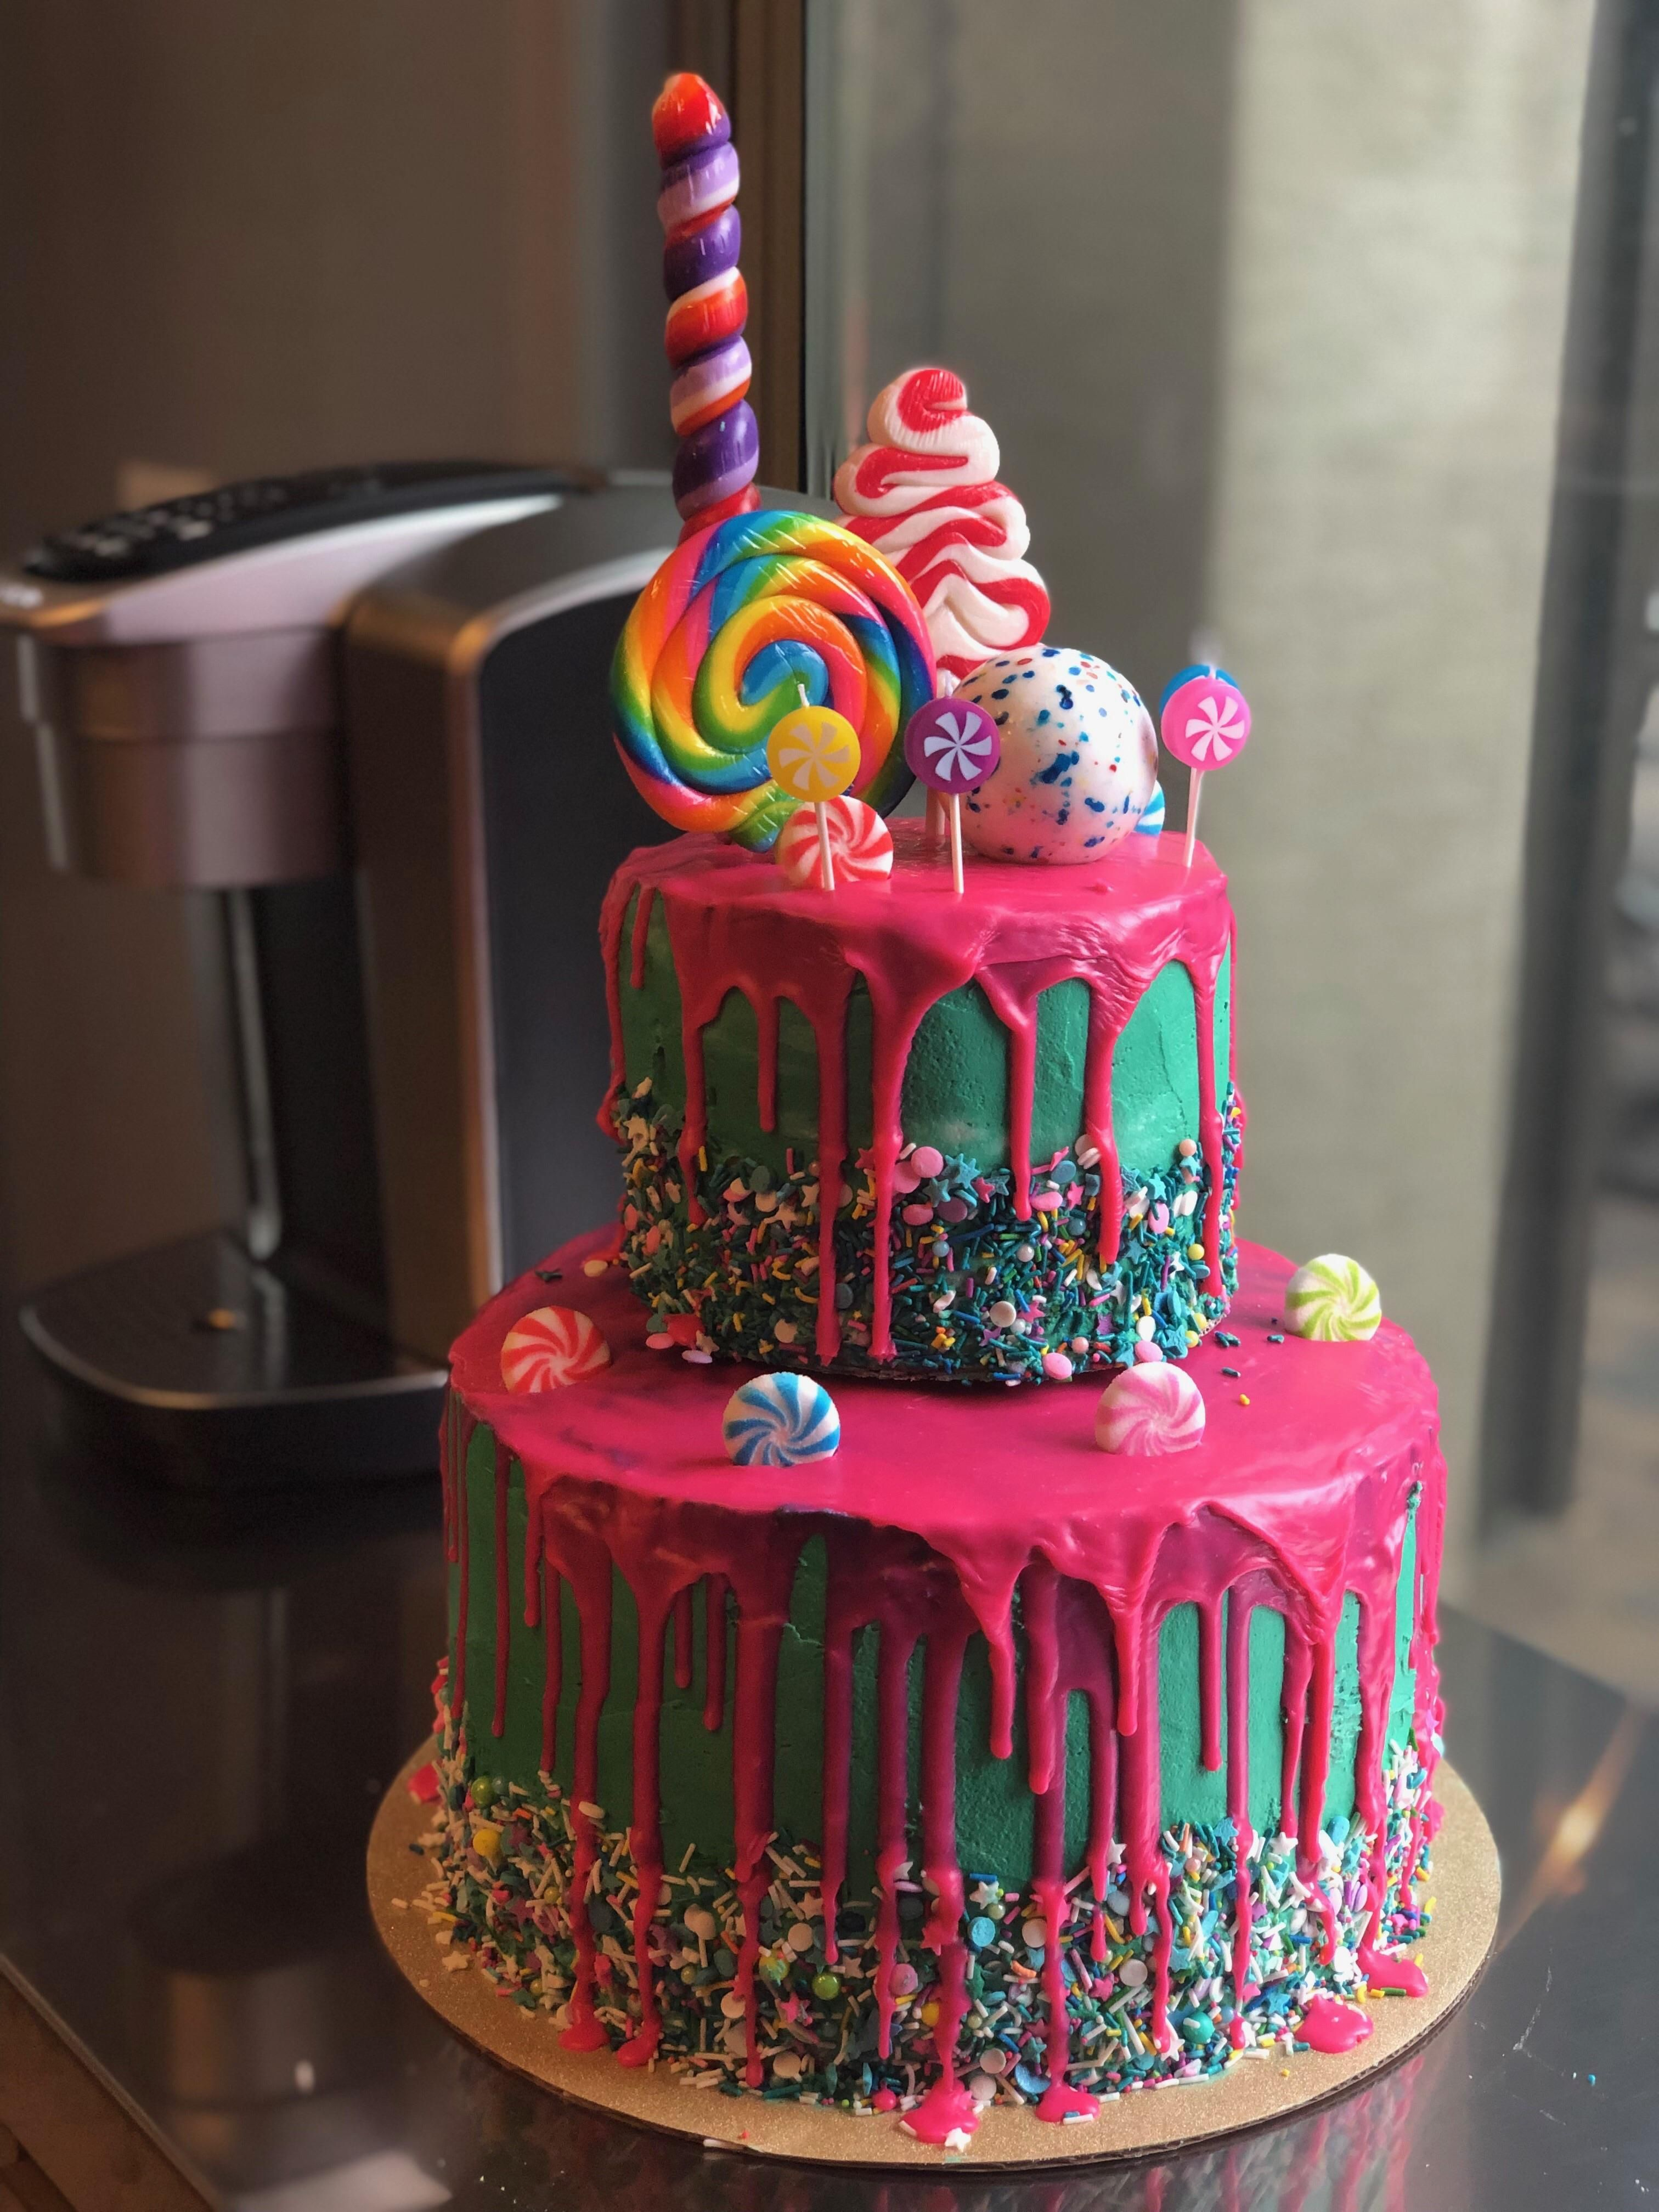 I made my daughter's 4th Birthday cake. I was going for a